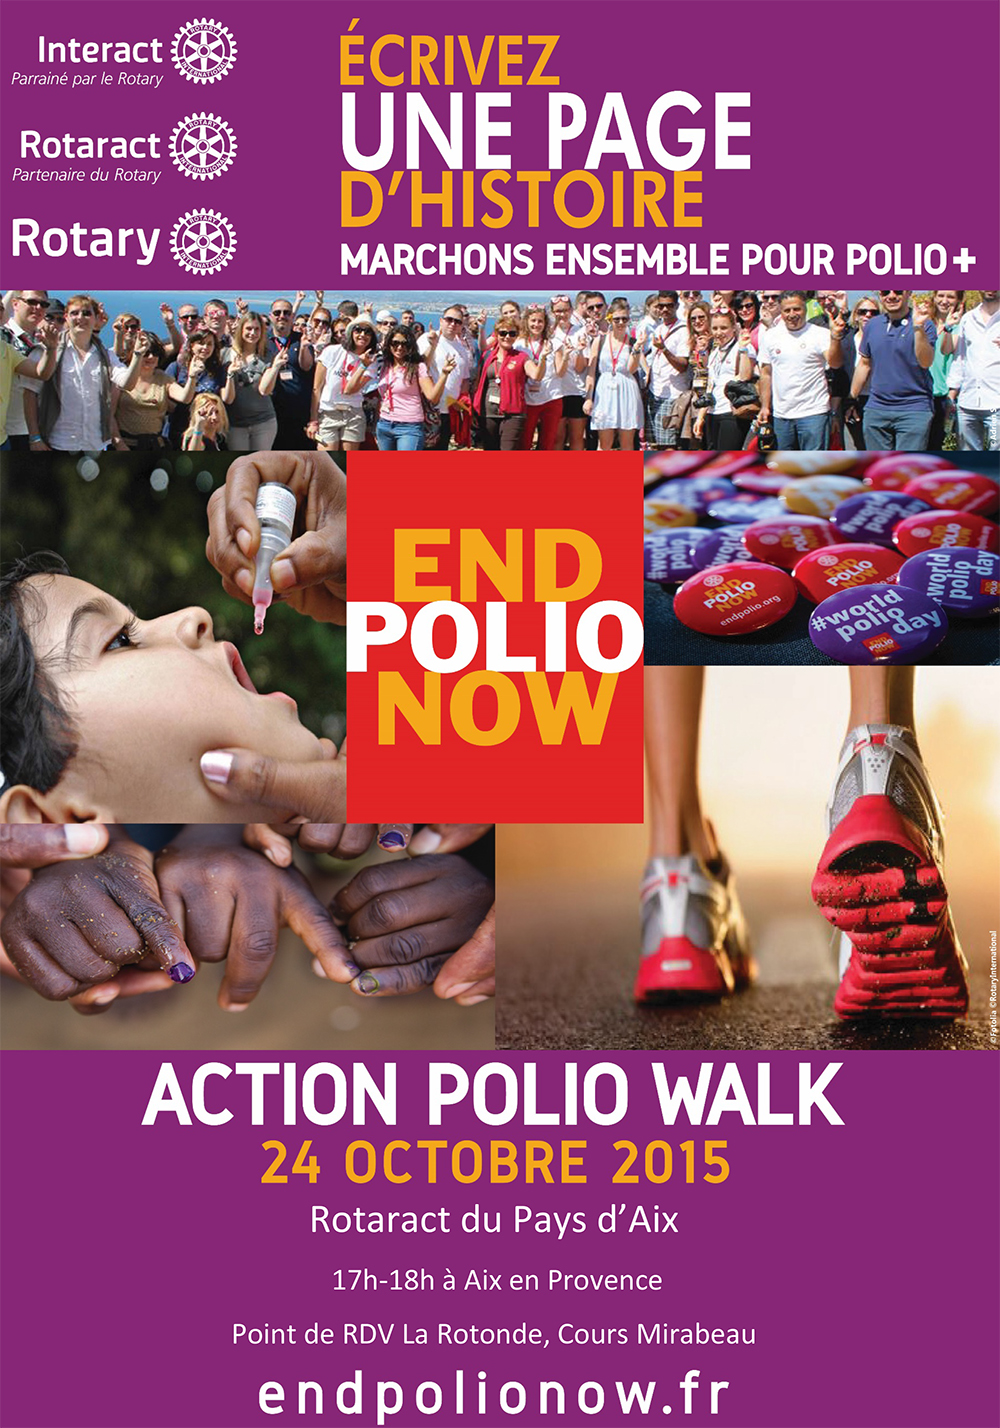 Polio Walk 24oct- Flyer Rotaract Aix